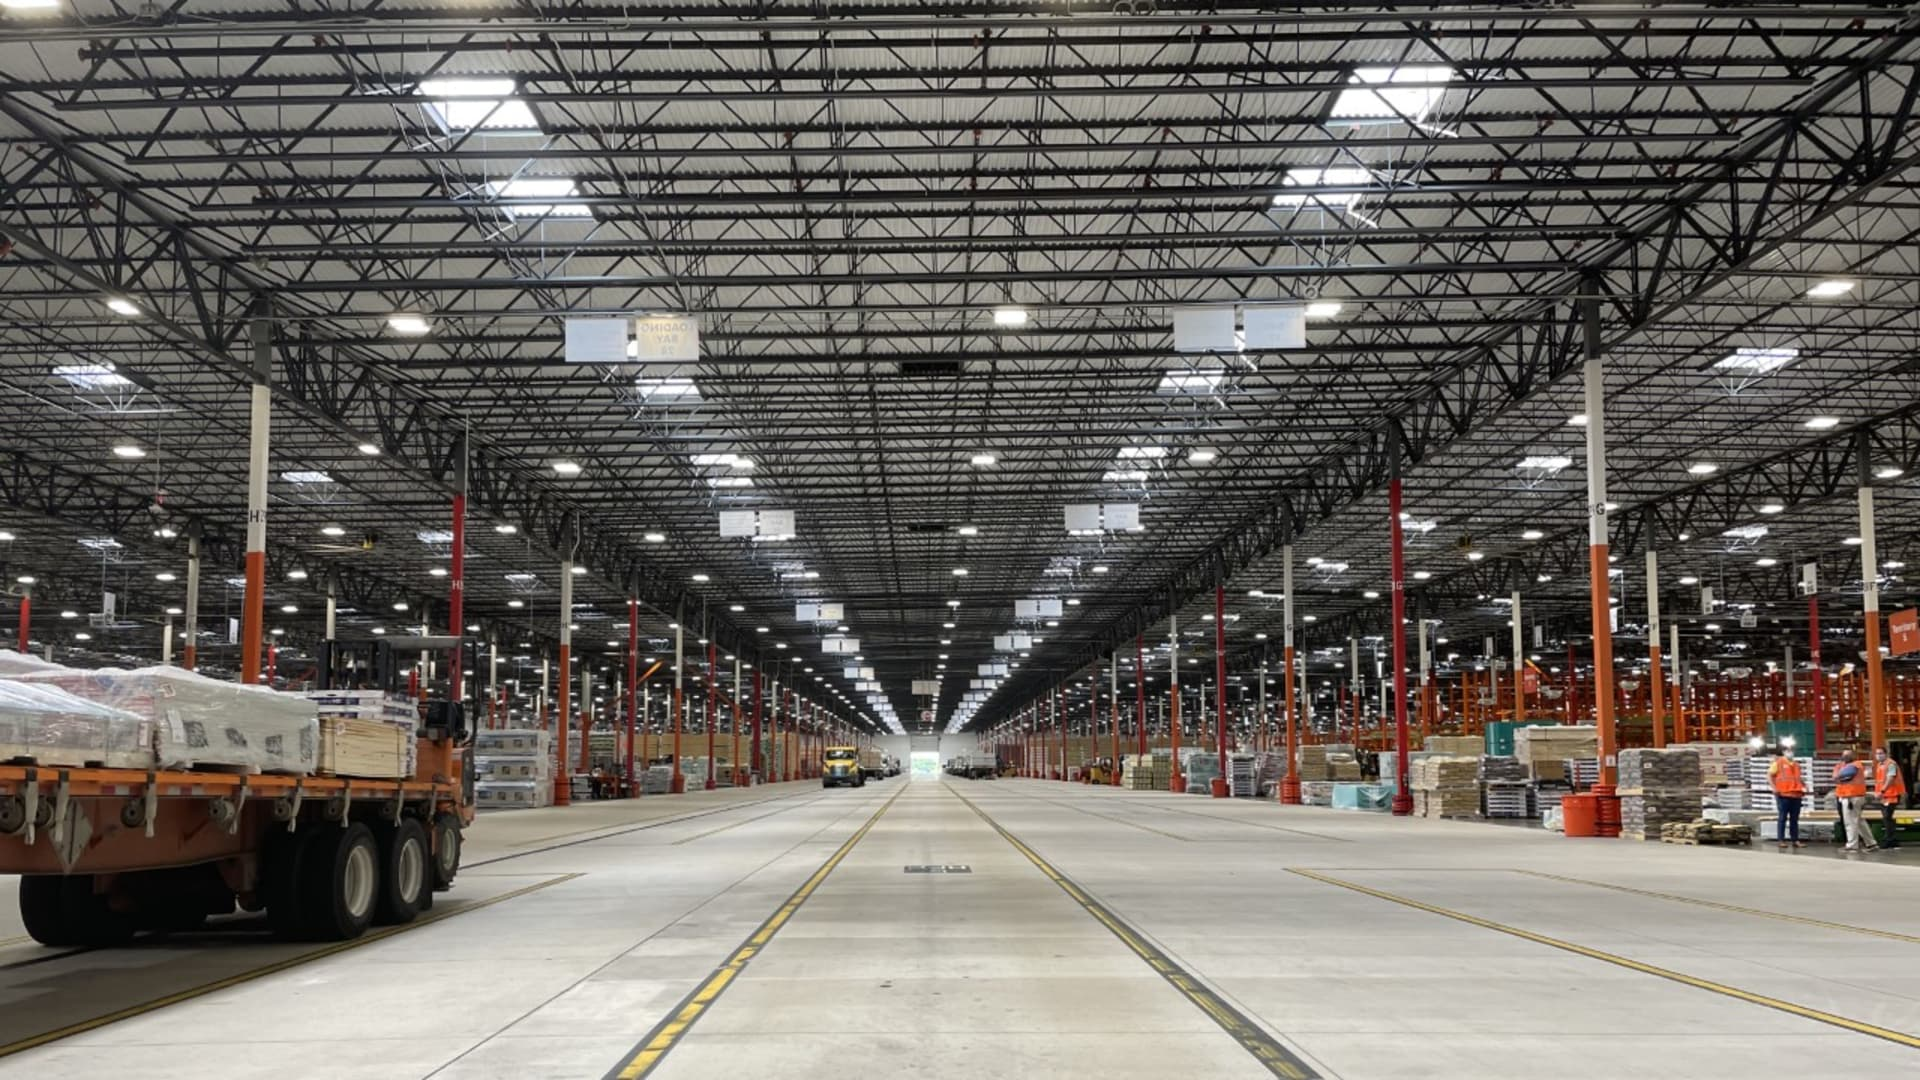 Home Depot has a flatbed distribution center in the Dallas area. It is opening more of the facilities across the country to help fulfill home professionals' large orders.